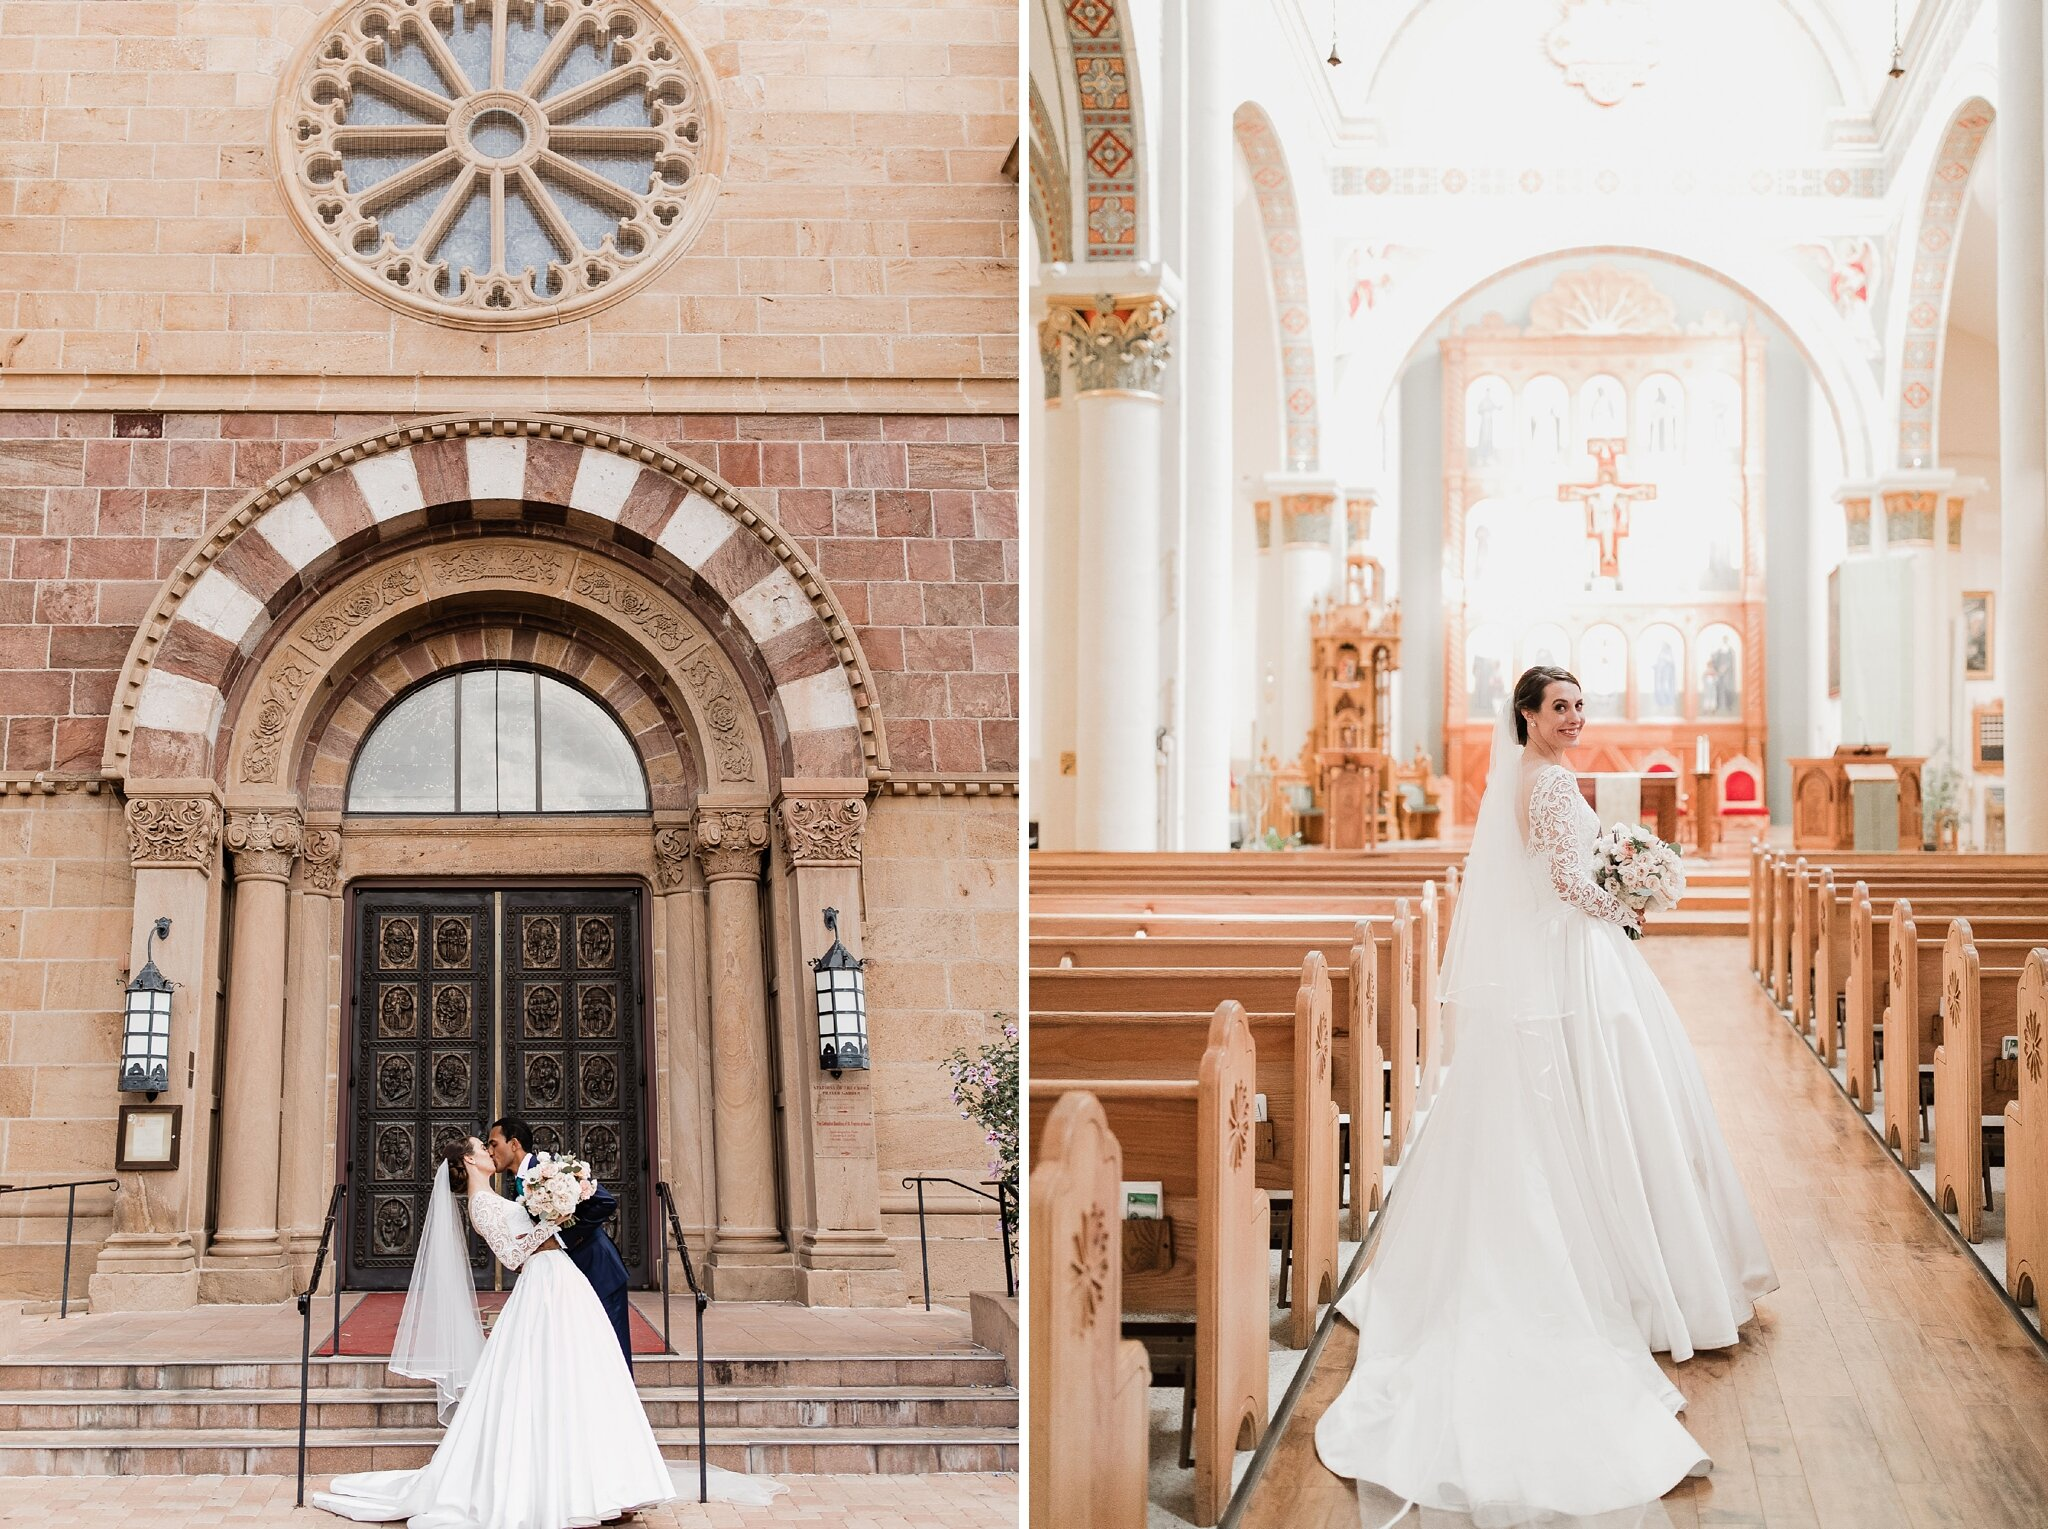 Alicia+lucia+photography+-+albuquerque+wedding+photographer+-+santa+fe+wedding+photography+-+new+mexico+wedding+photographer+-+new+mexico+wedding+-+wedding+-+bridal+gown+-+wedding+gown+-+ballgown+wedding+gown+-+ballgown+bridal+gown_0006.jpg